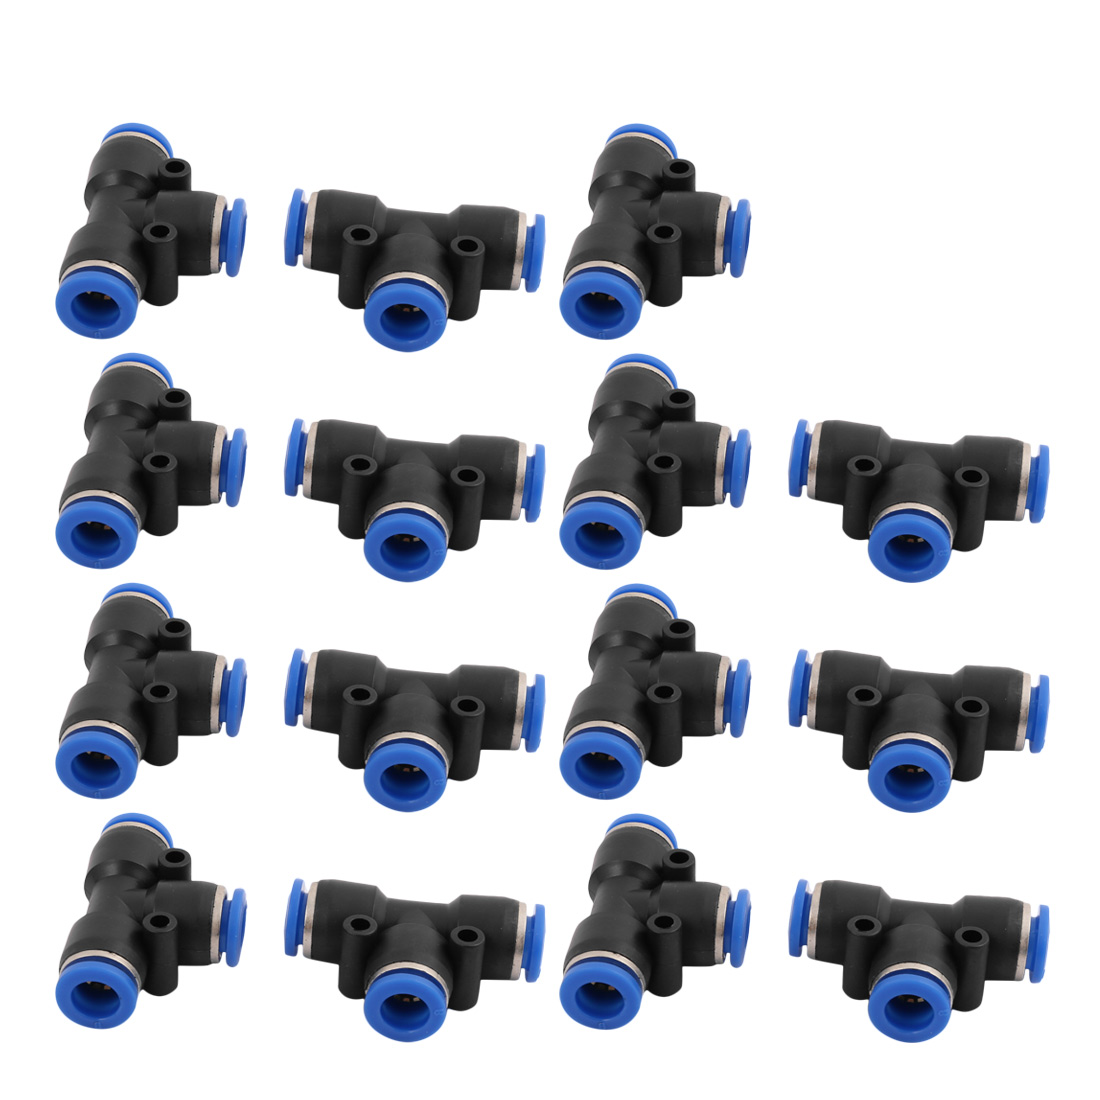 15Pcs 8mm Dia T 3 Ways Type Tube Hose Pneumatic Air Quick Fitting Push In Connector